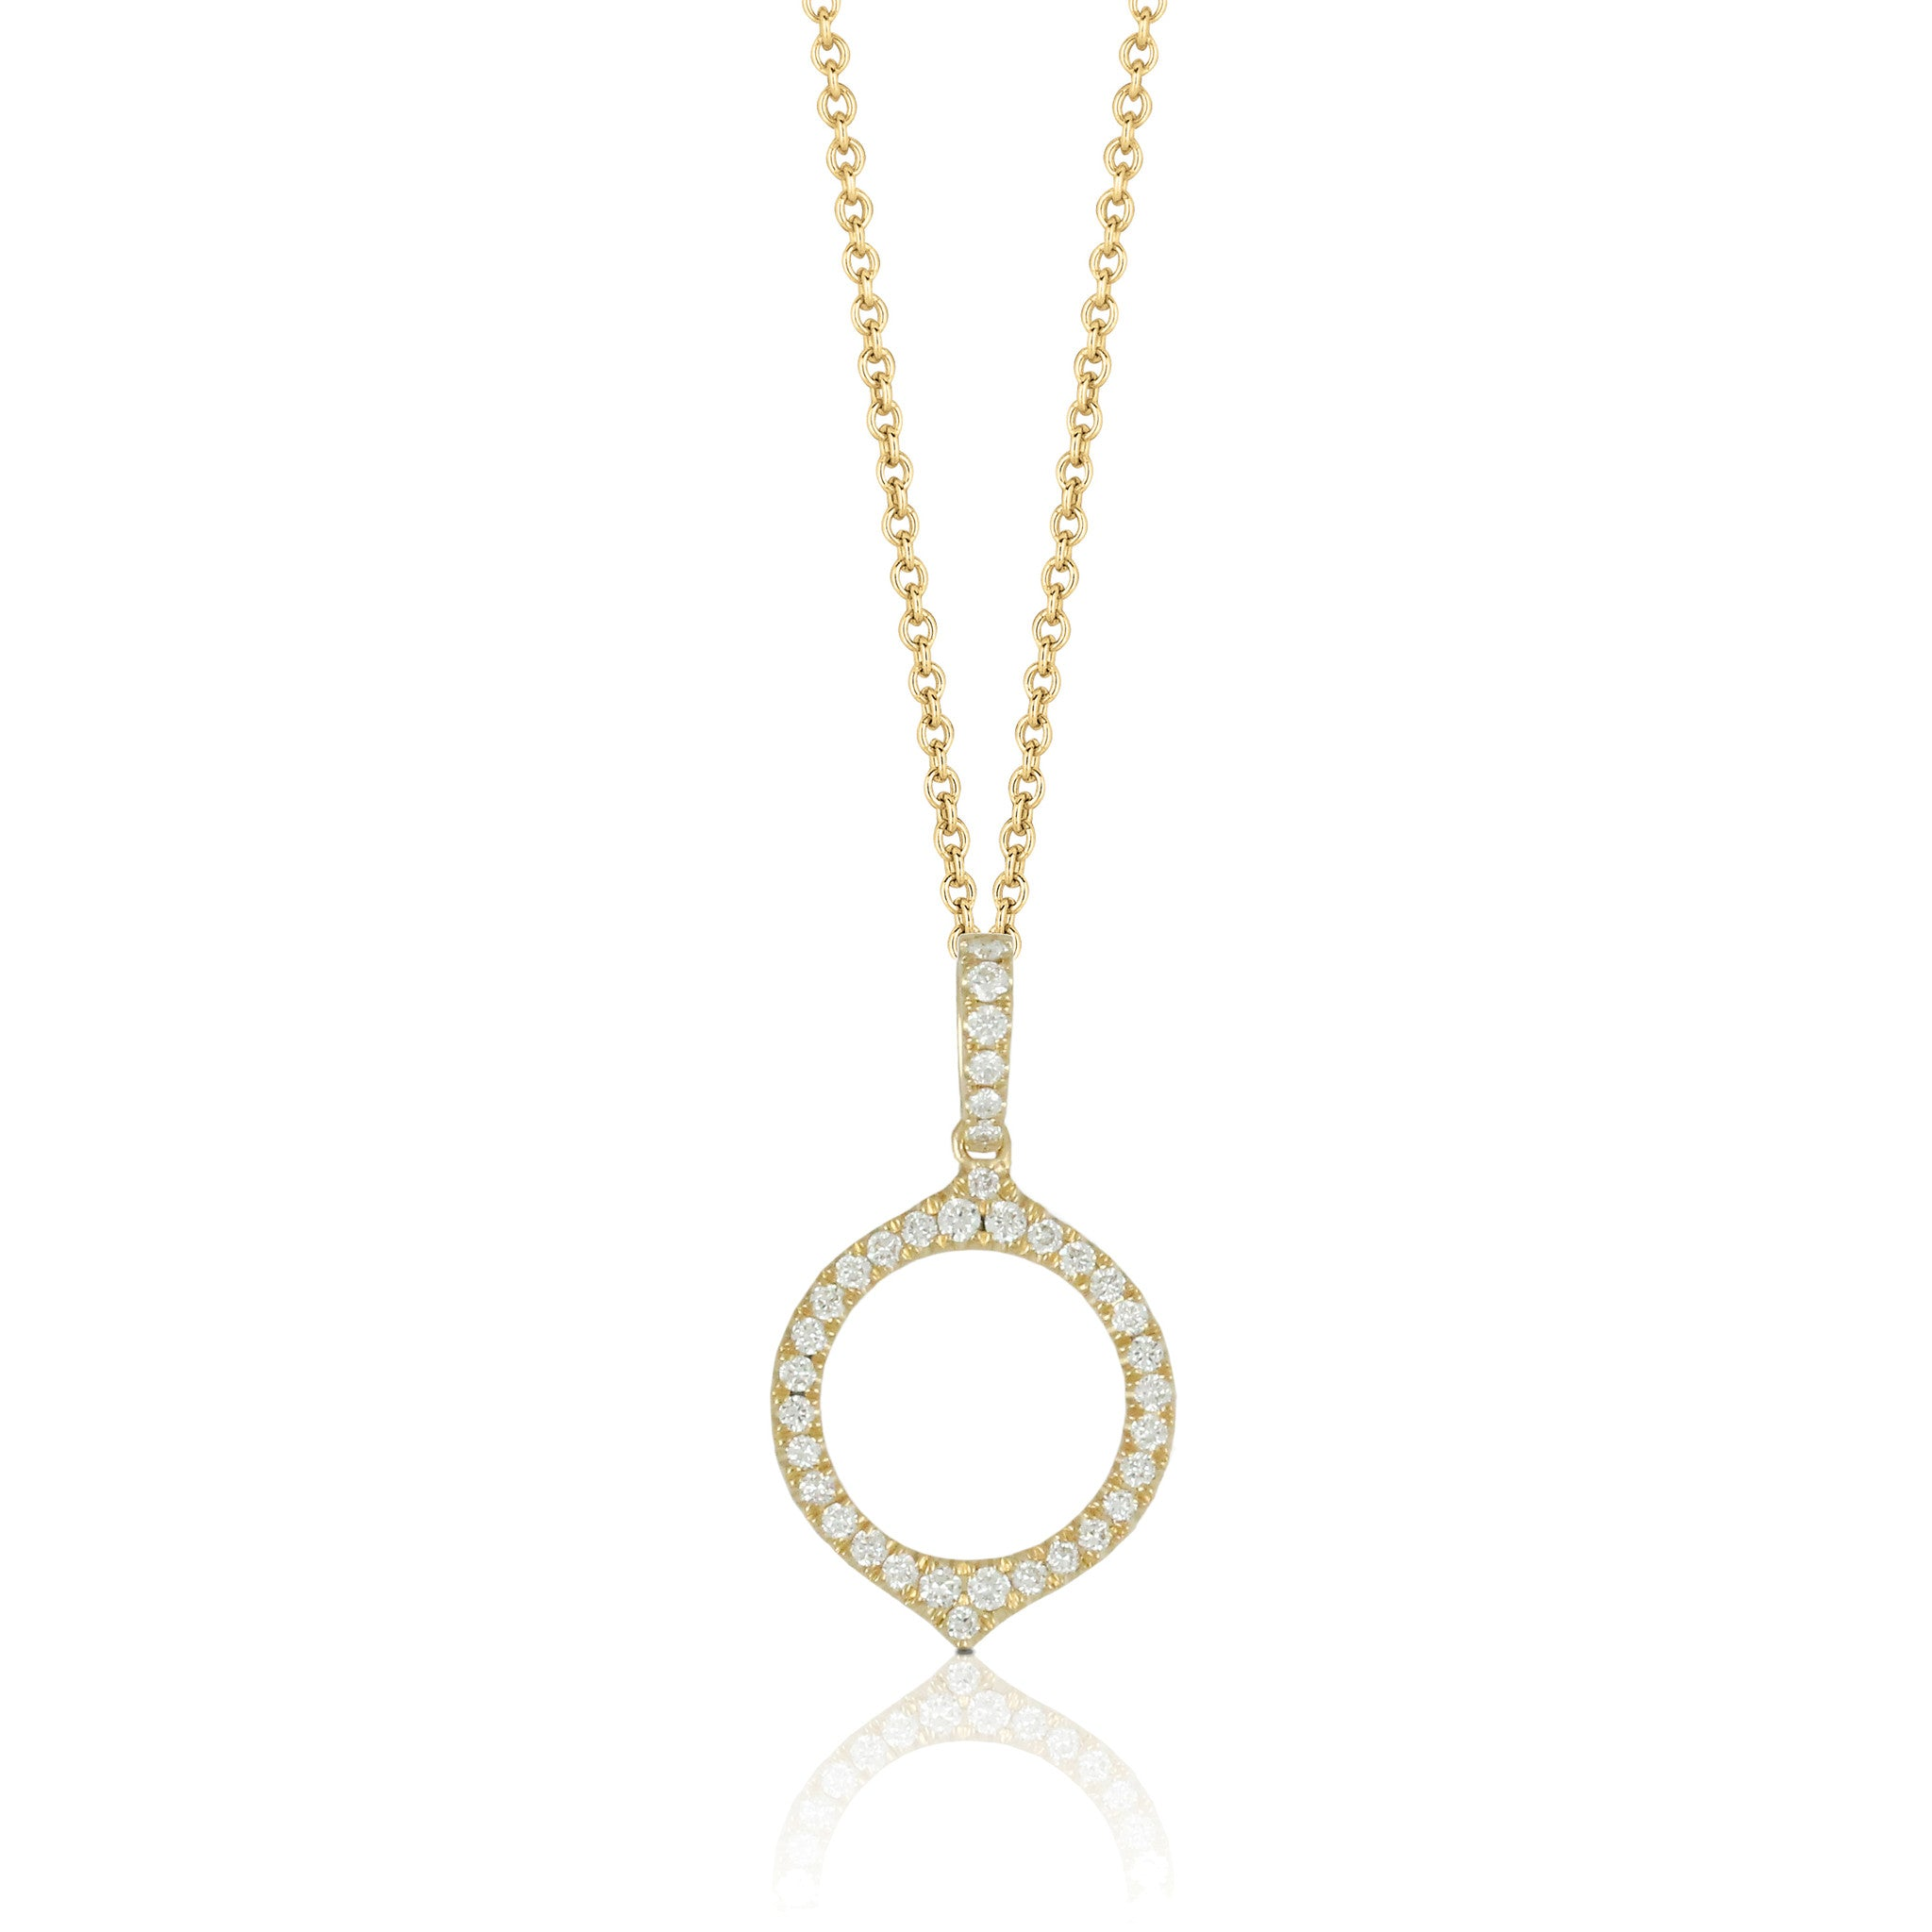 brilliant diamond graff cut collections pendant a featuring round pendants necklace classic